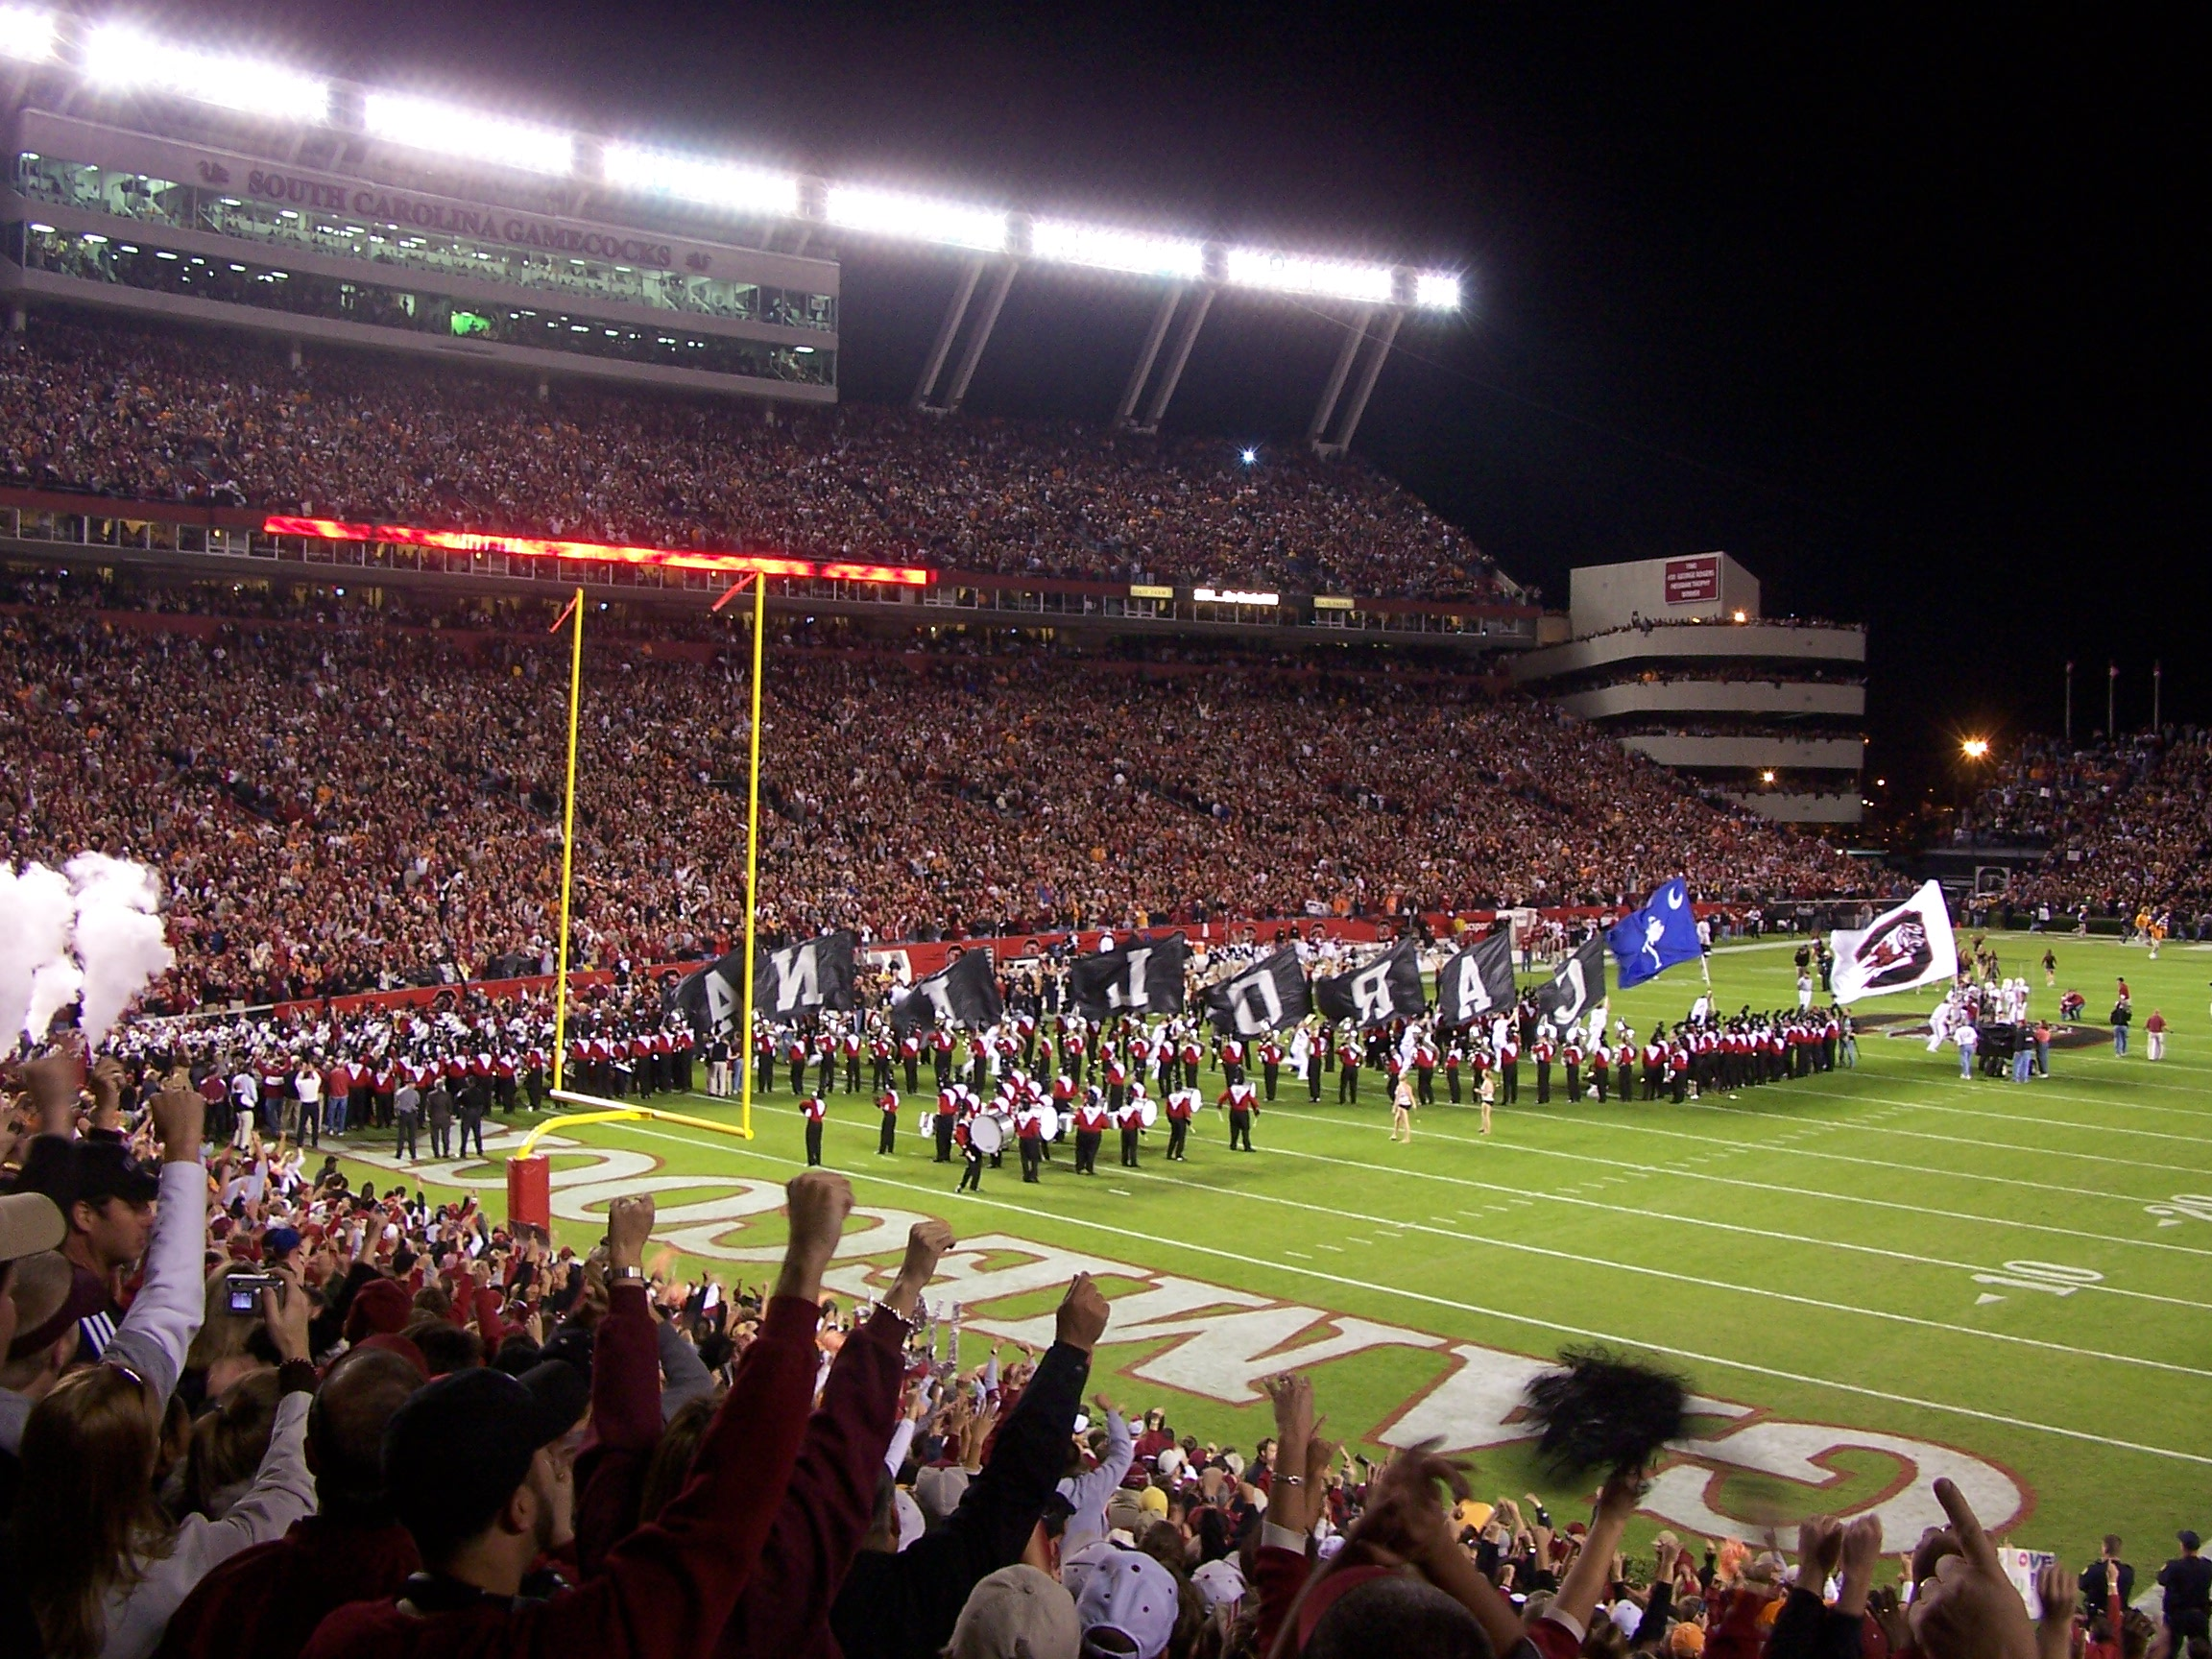 https://i2.wp.com/upload.wikimedia.org/wikipedia/commons/3/38/Williams-Brice_Stadium.jpg